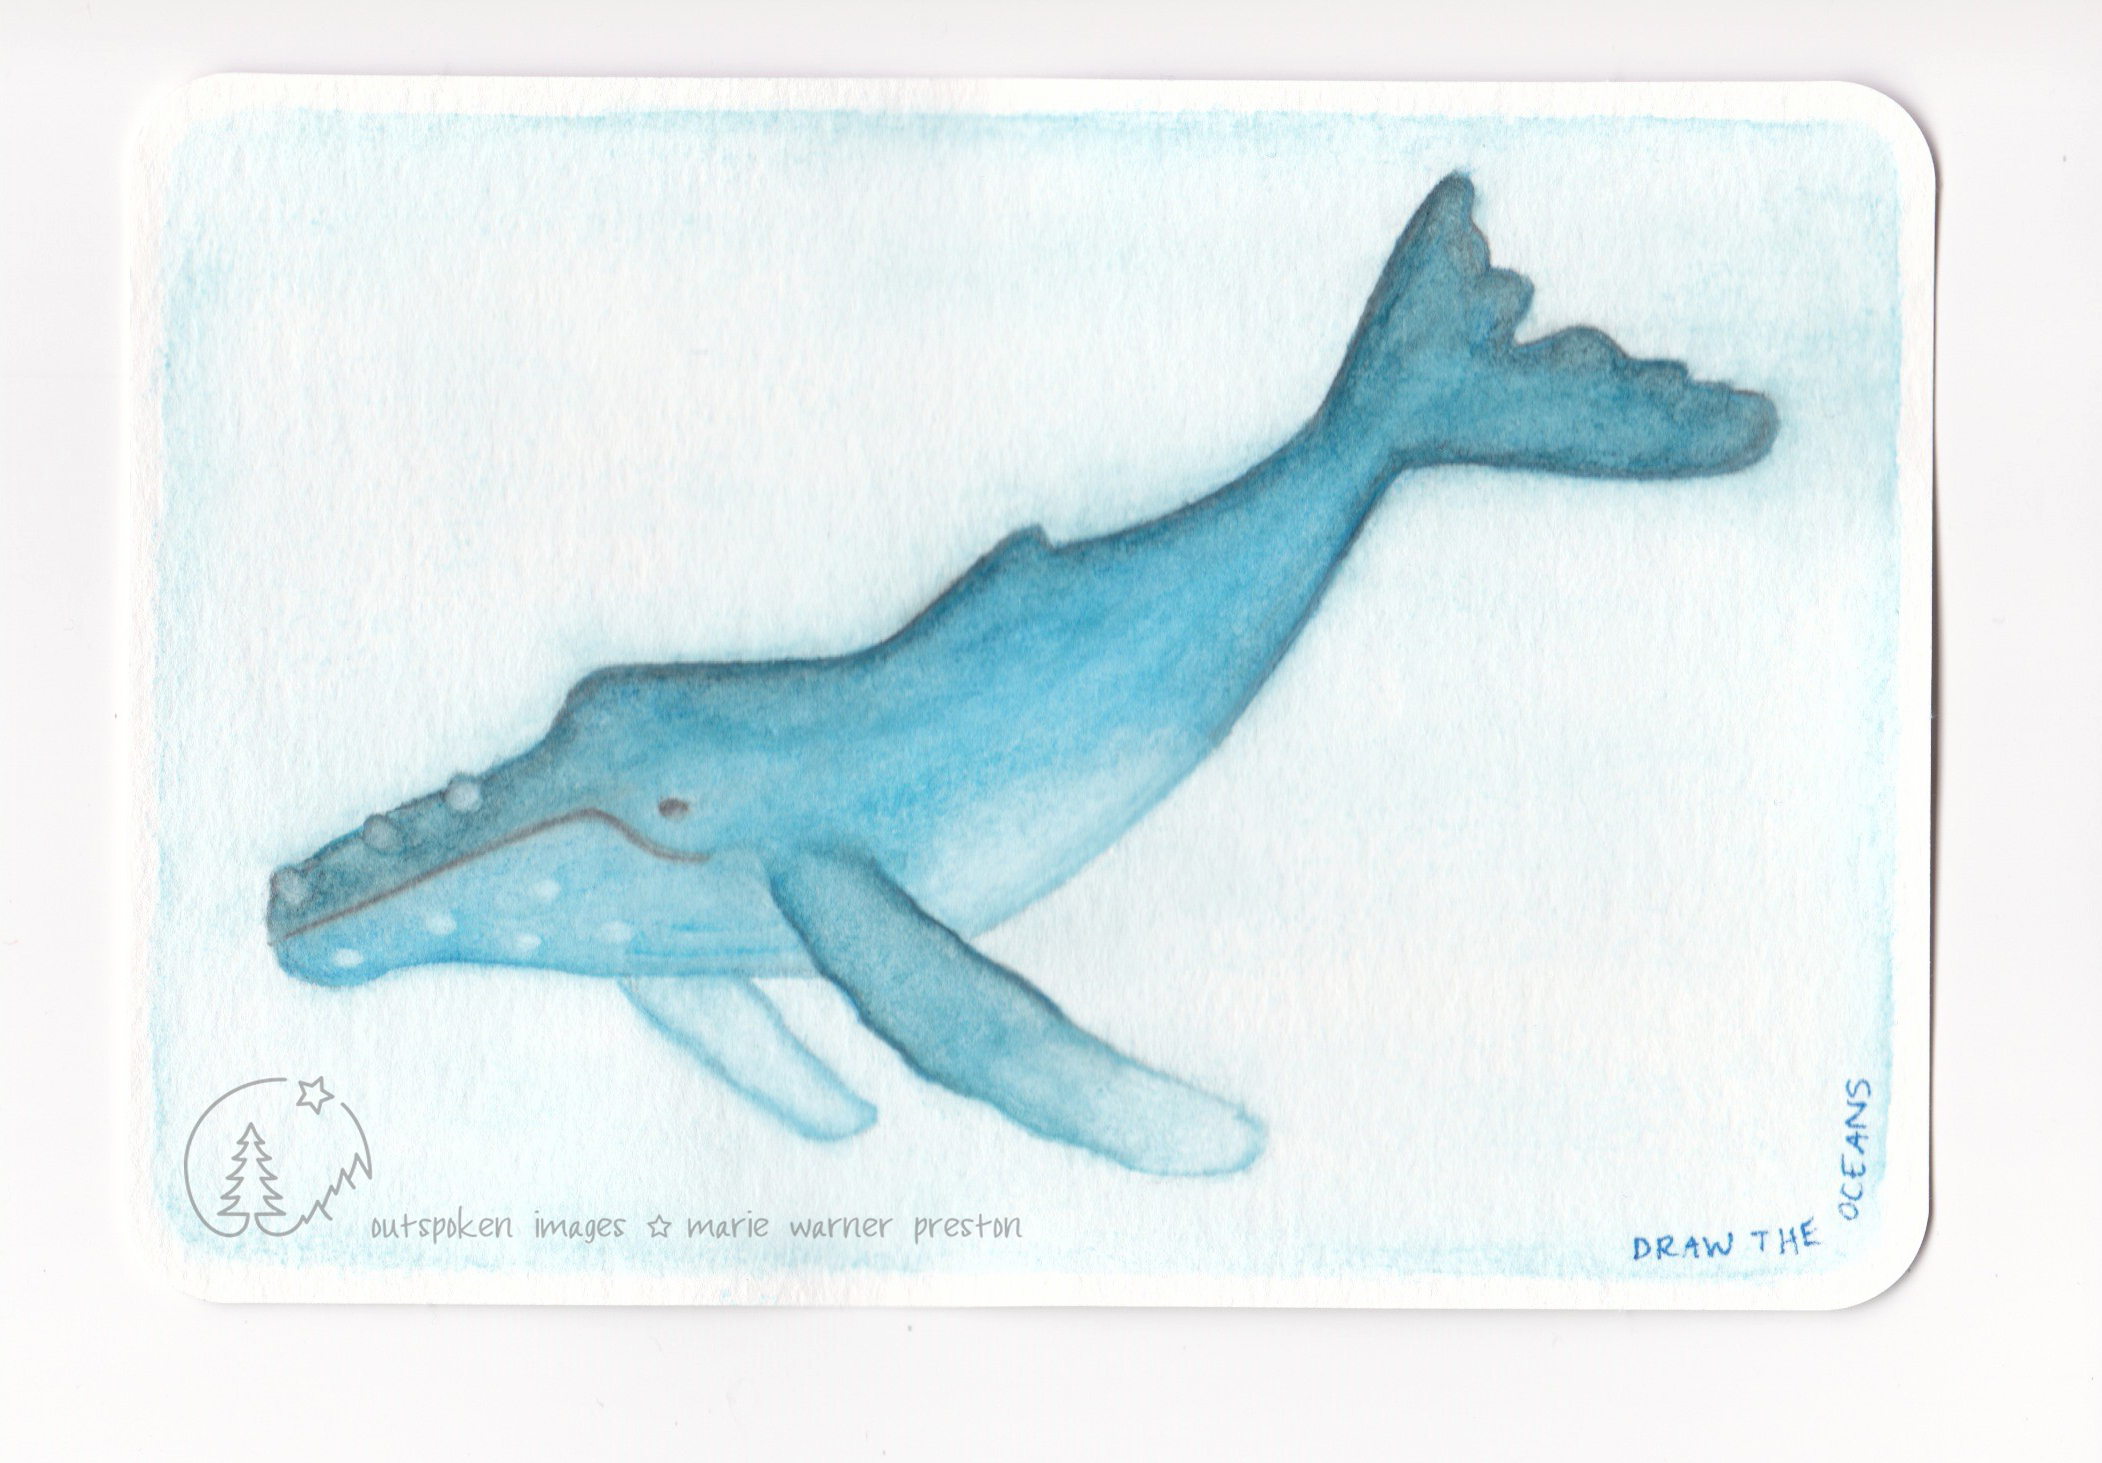 Watercolour painting: blue Humpback whale on blue background with Draw The Oceans text. ©2021 Outspoken Images by Marie Warner Preston